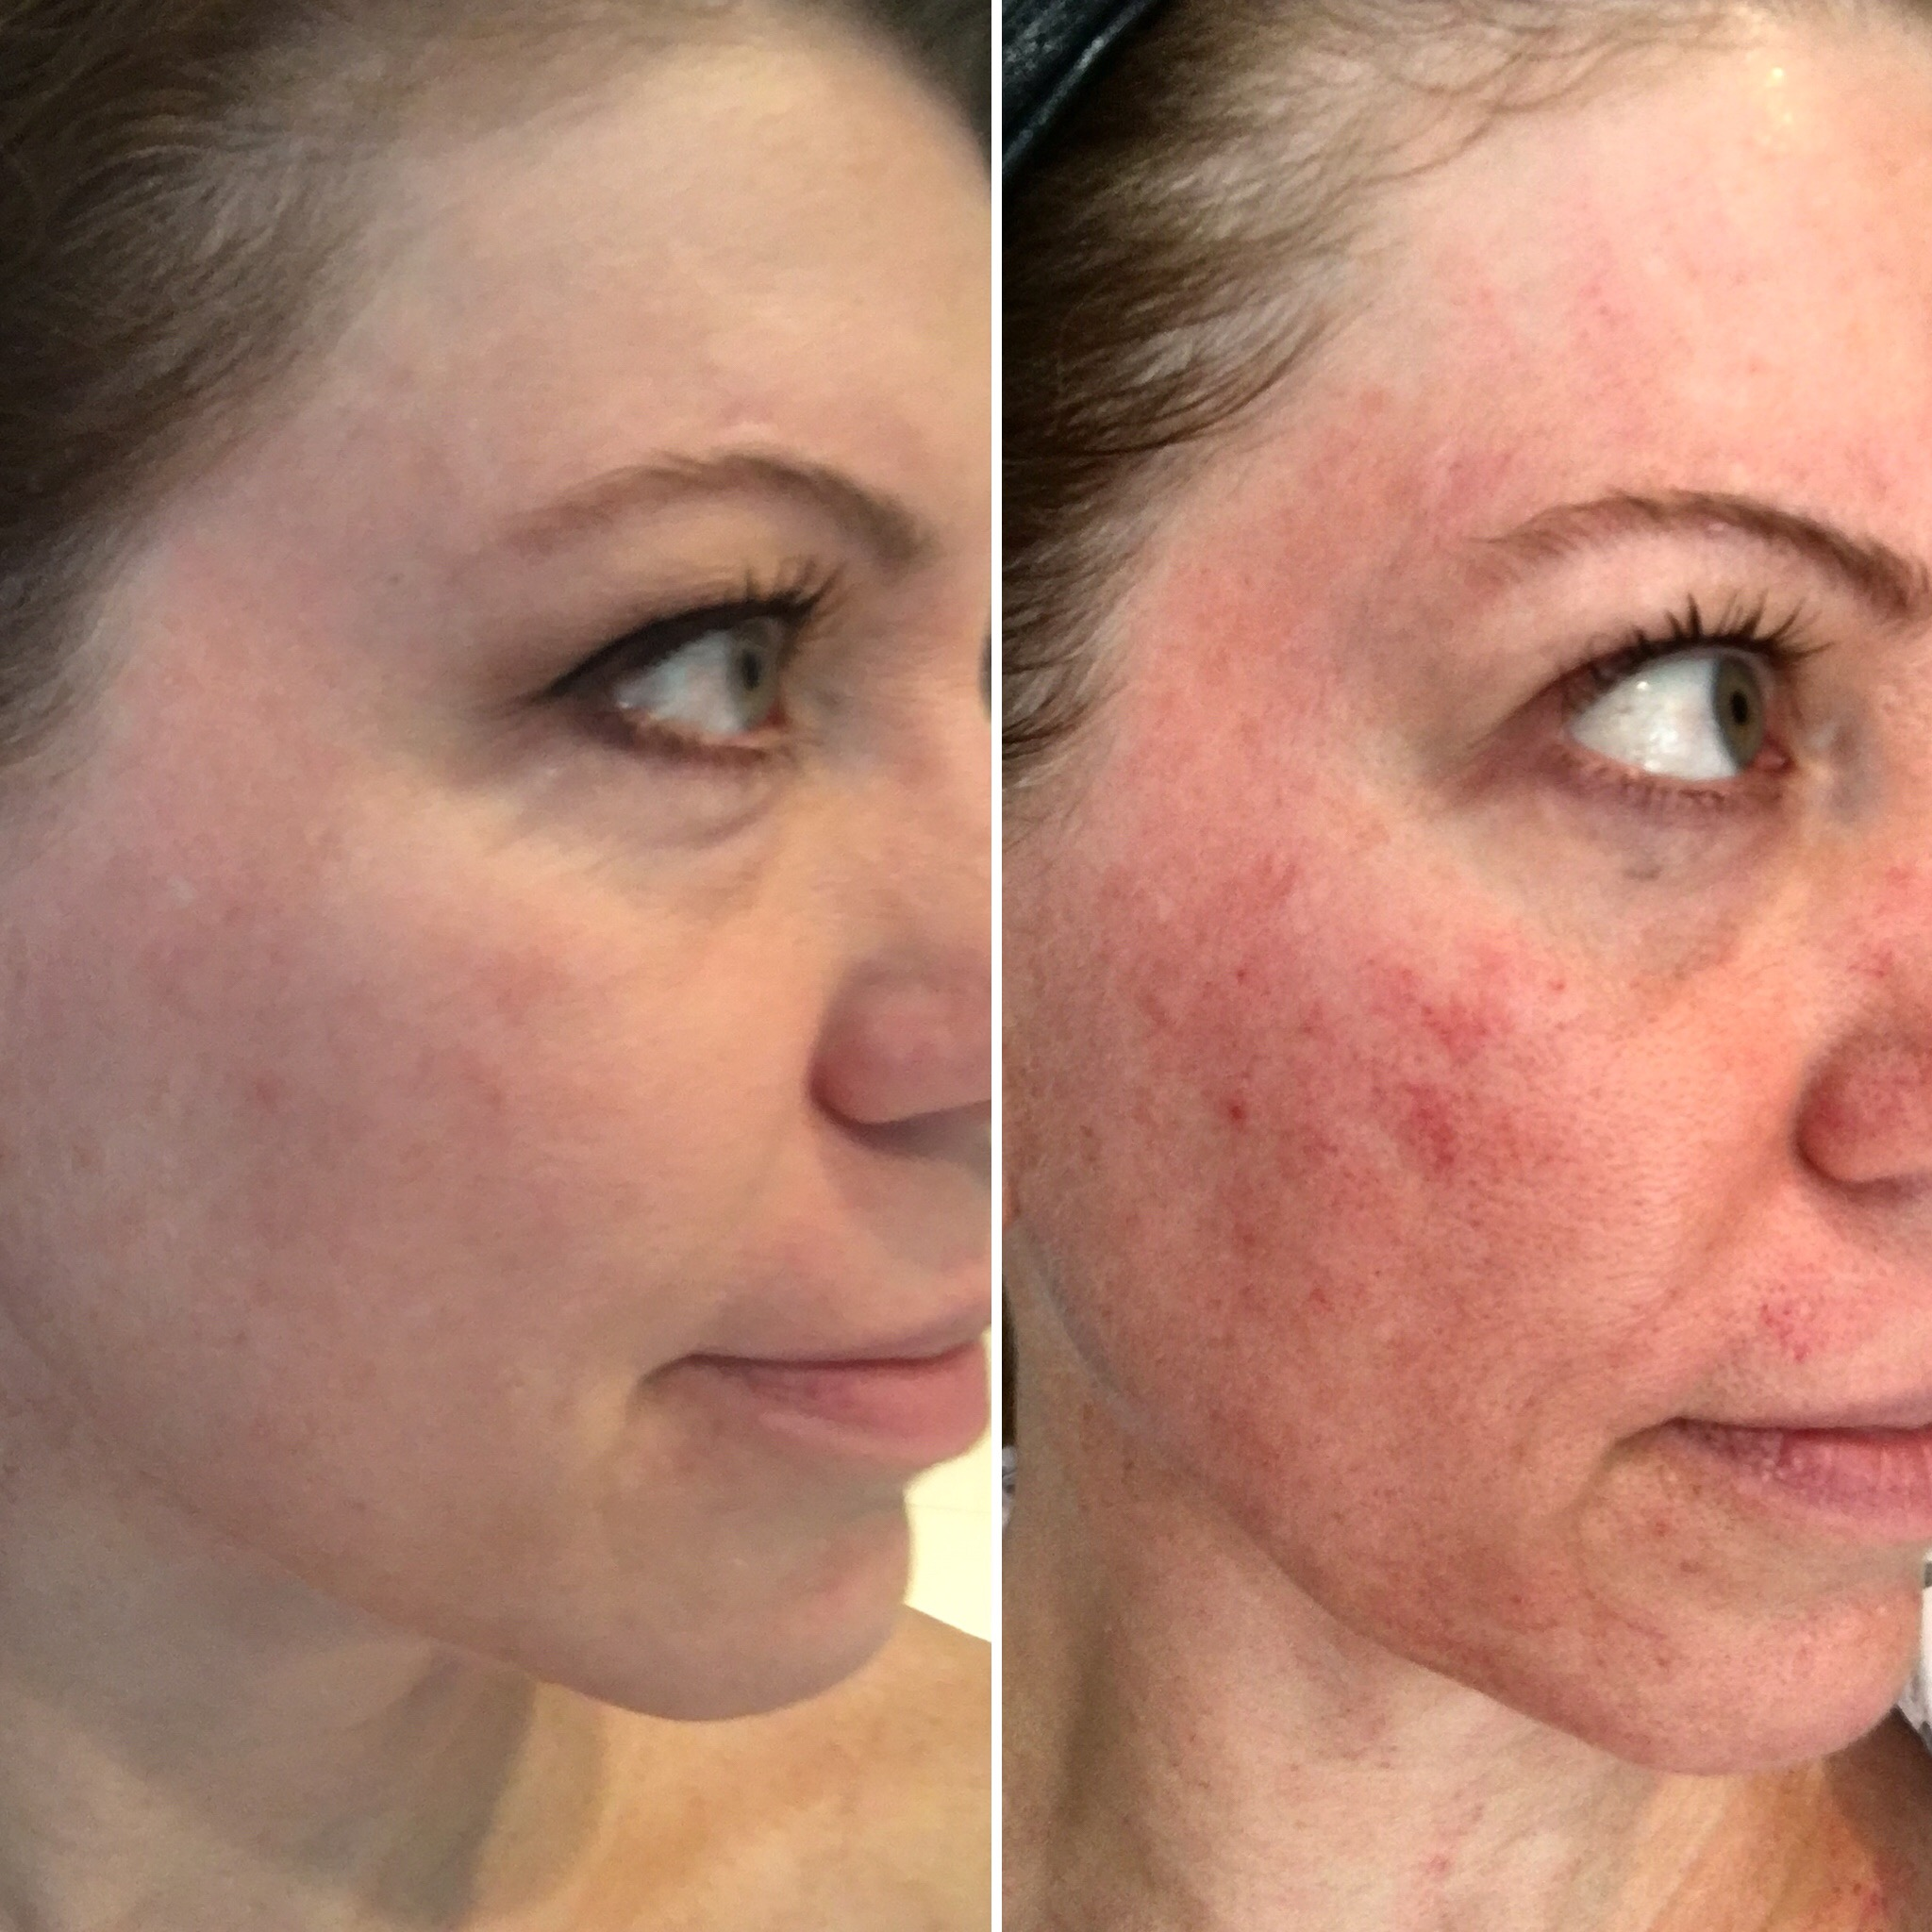 Microdermabrasion vs Dermaplaning vs Microneedling, My Experience and Results!